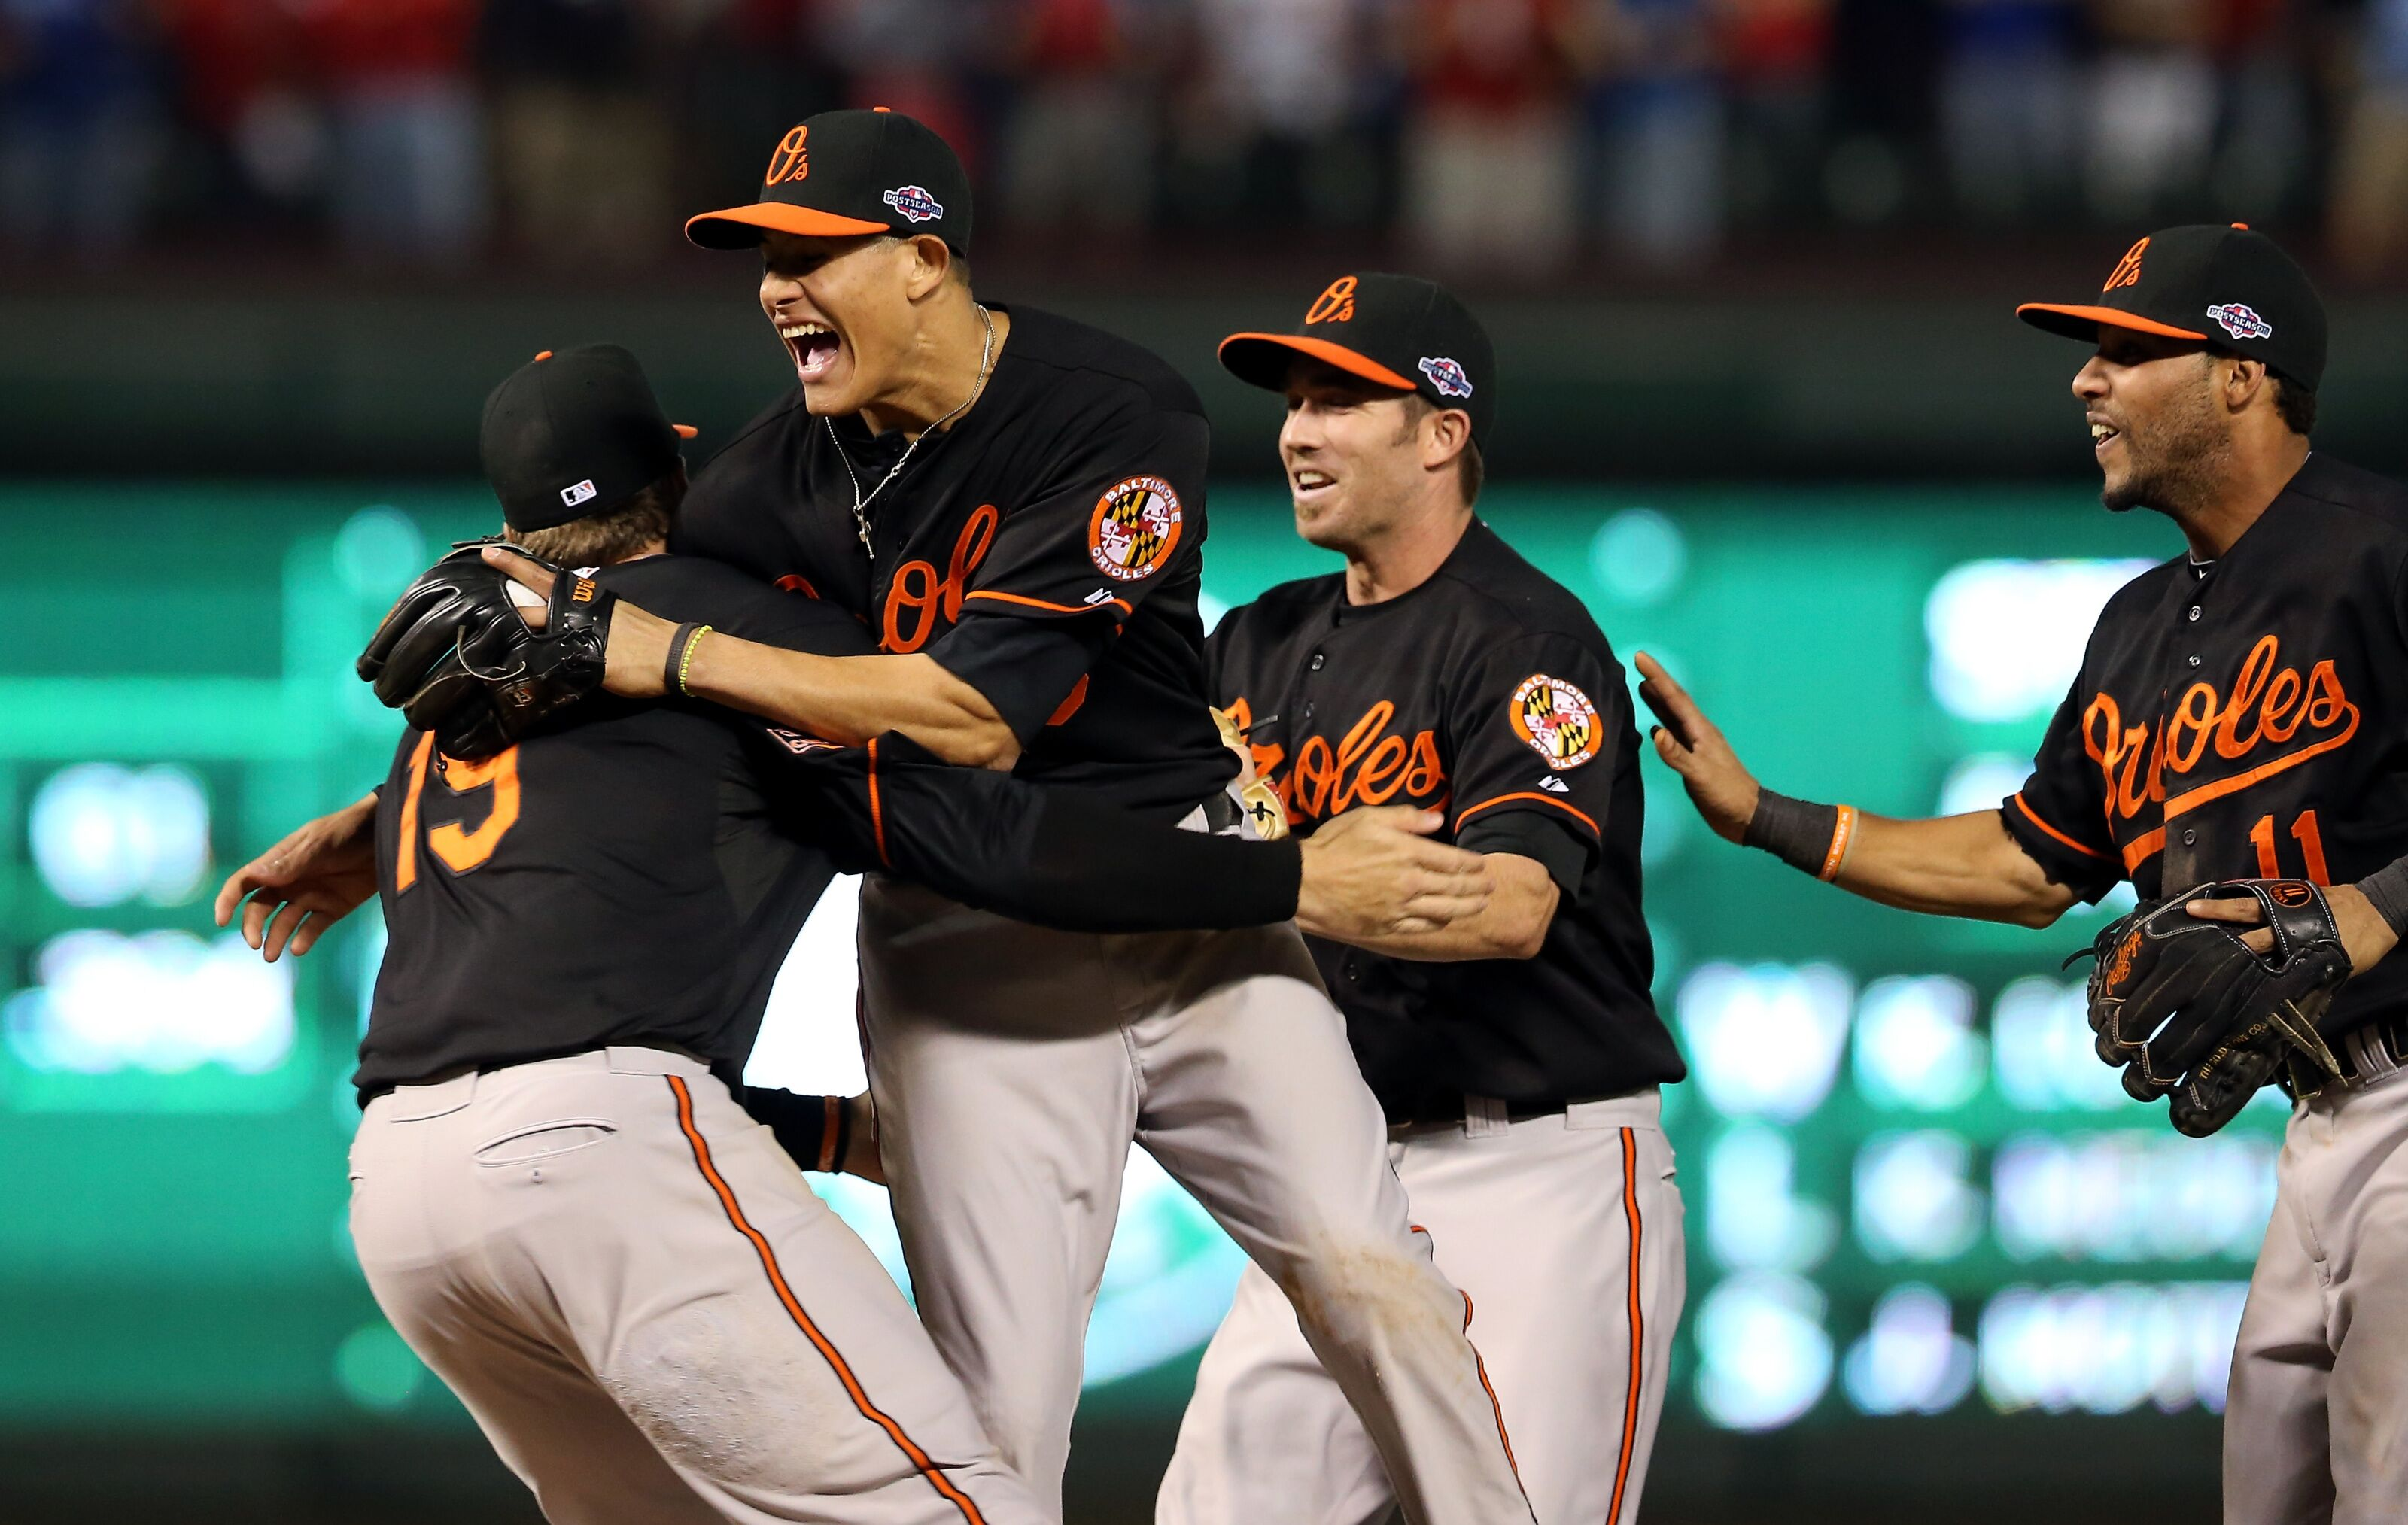 Baltimore Orioles: On This Day, The Orioles Became Winners Again